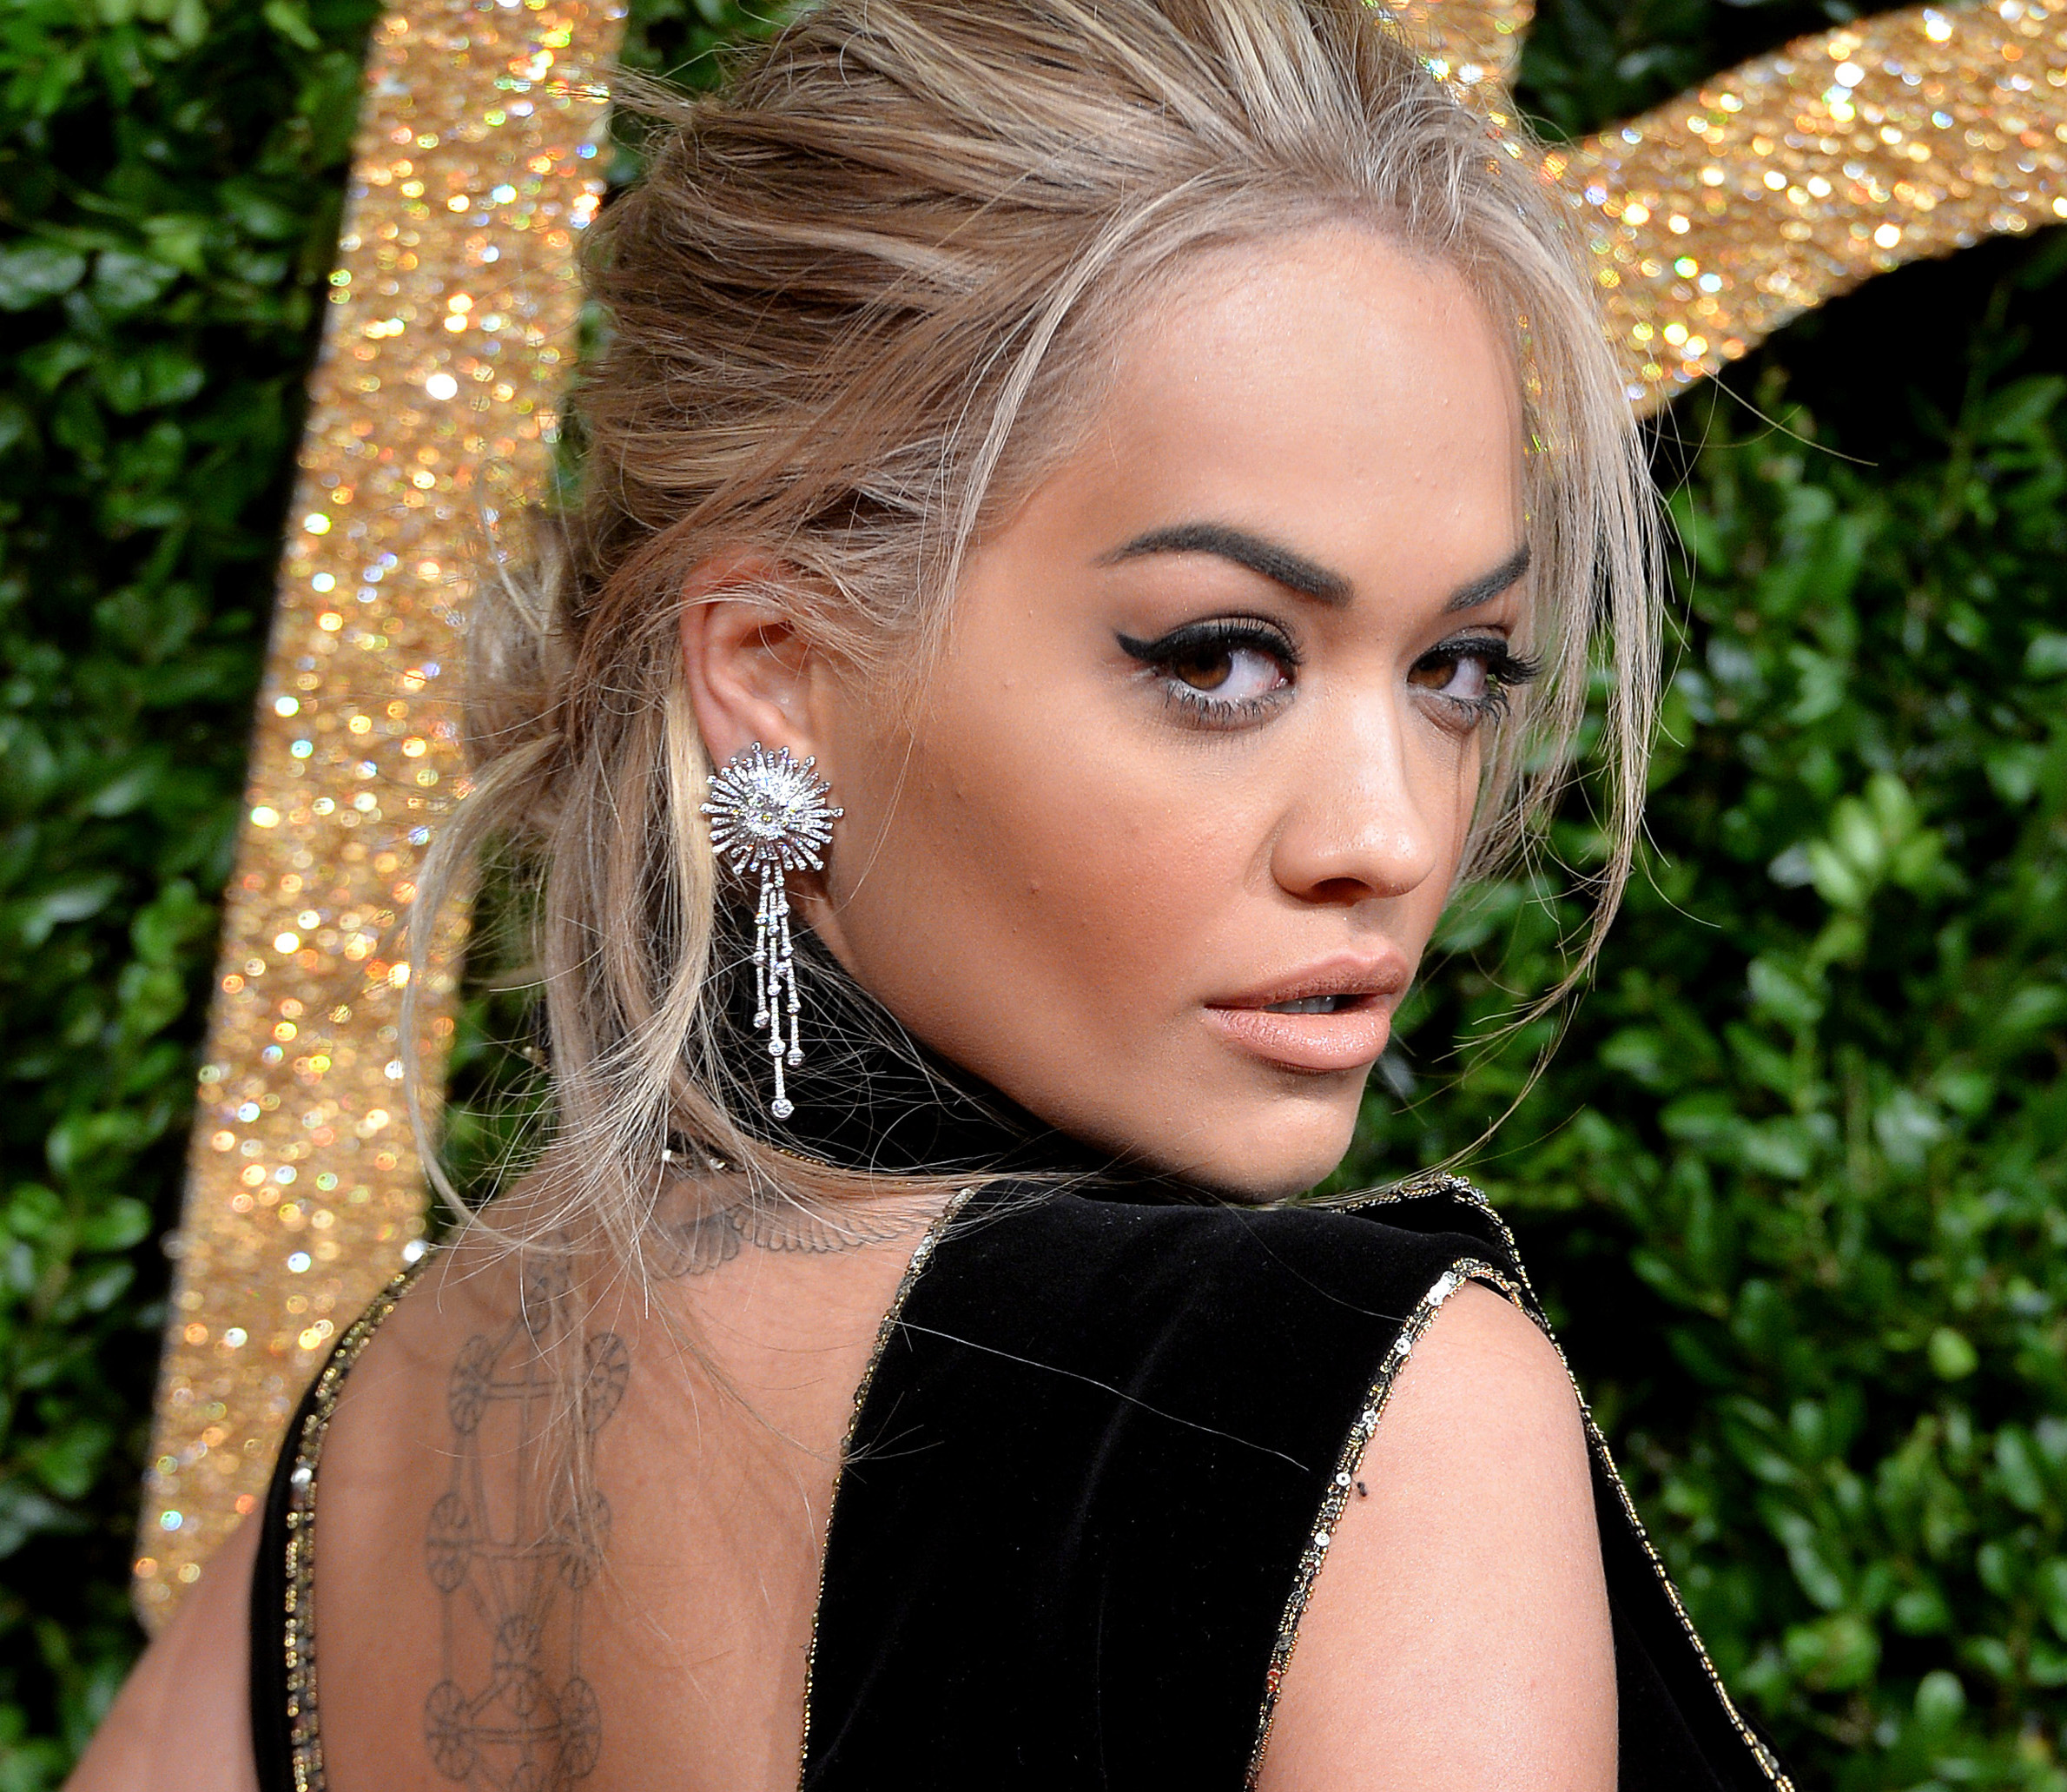 LONDON, ENGLAND - NOVEMBER 23: Rita Ora attends the British Fashion Awards 2015 at London Coliseum on November 23, 2015 in London, England. (Photo by Anthony Harvey/Getty Images)